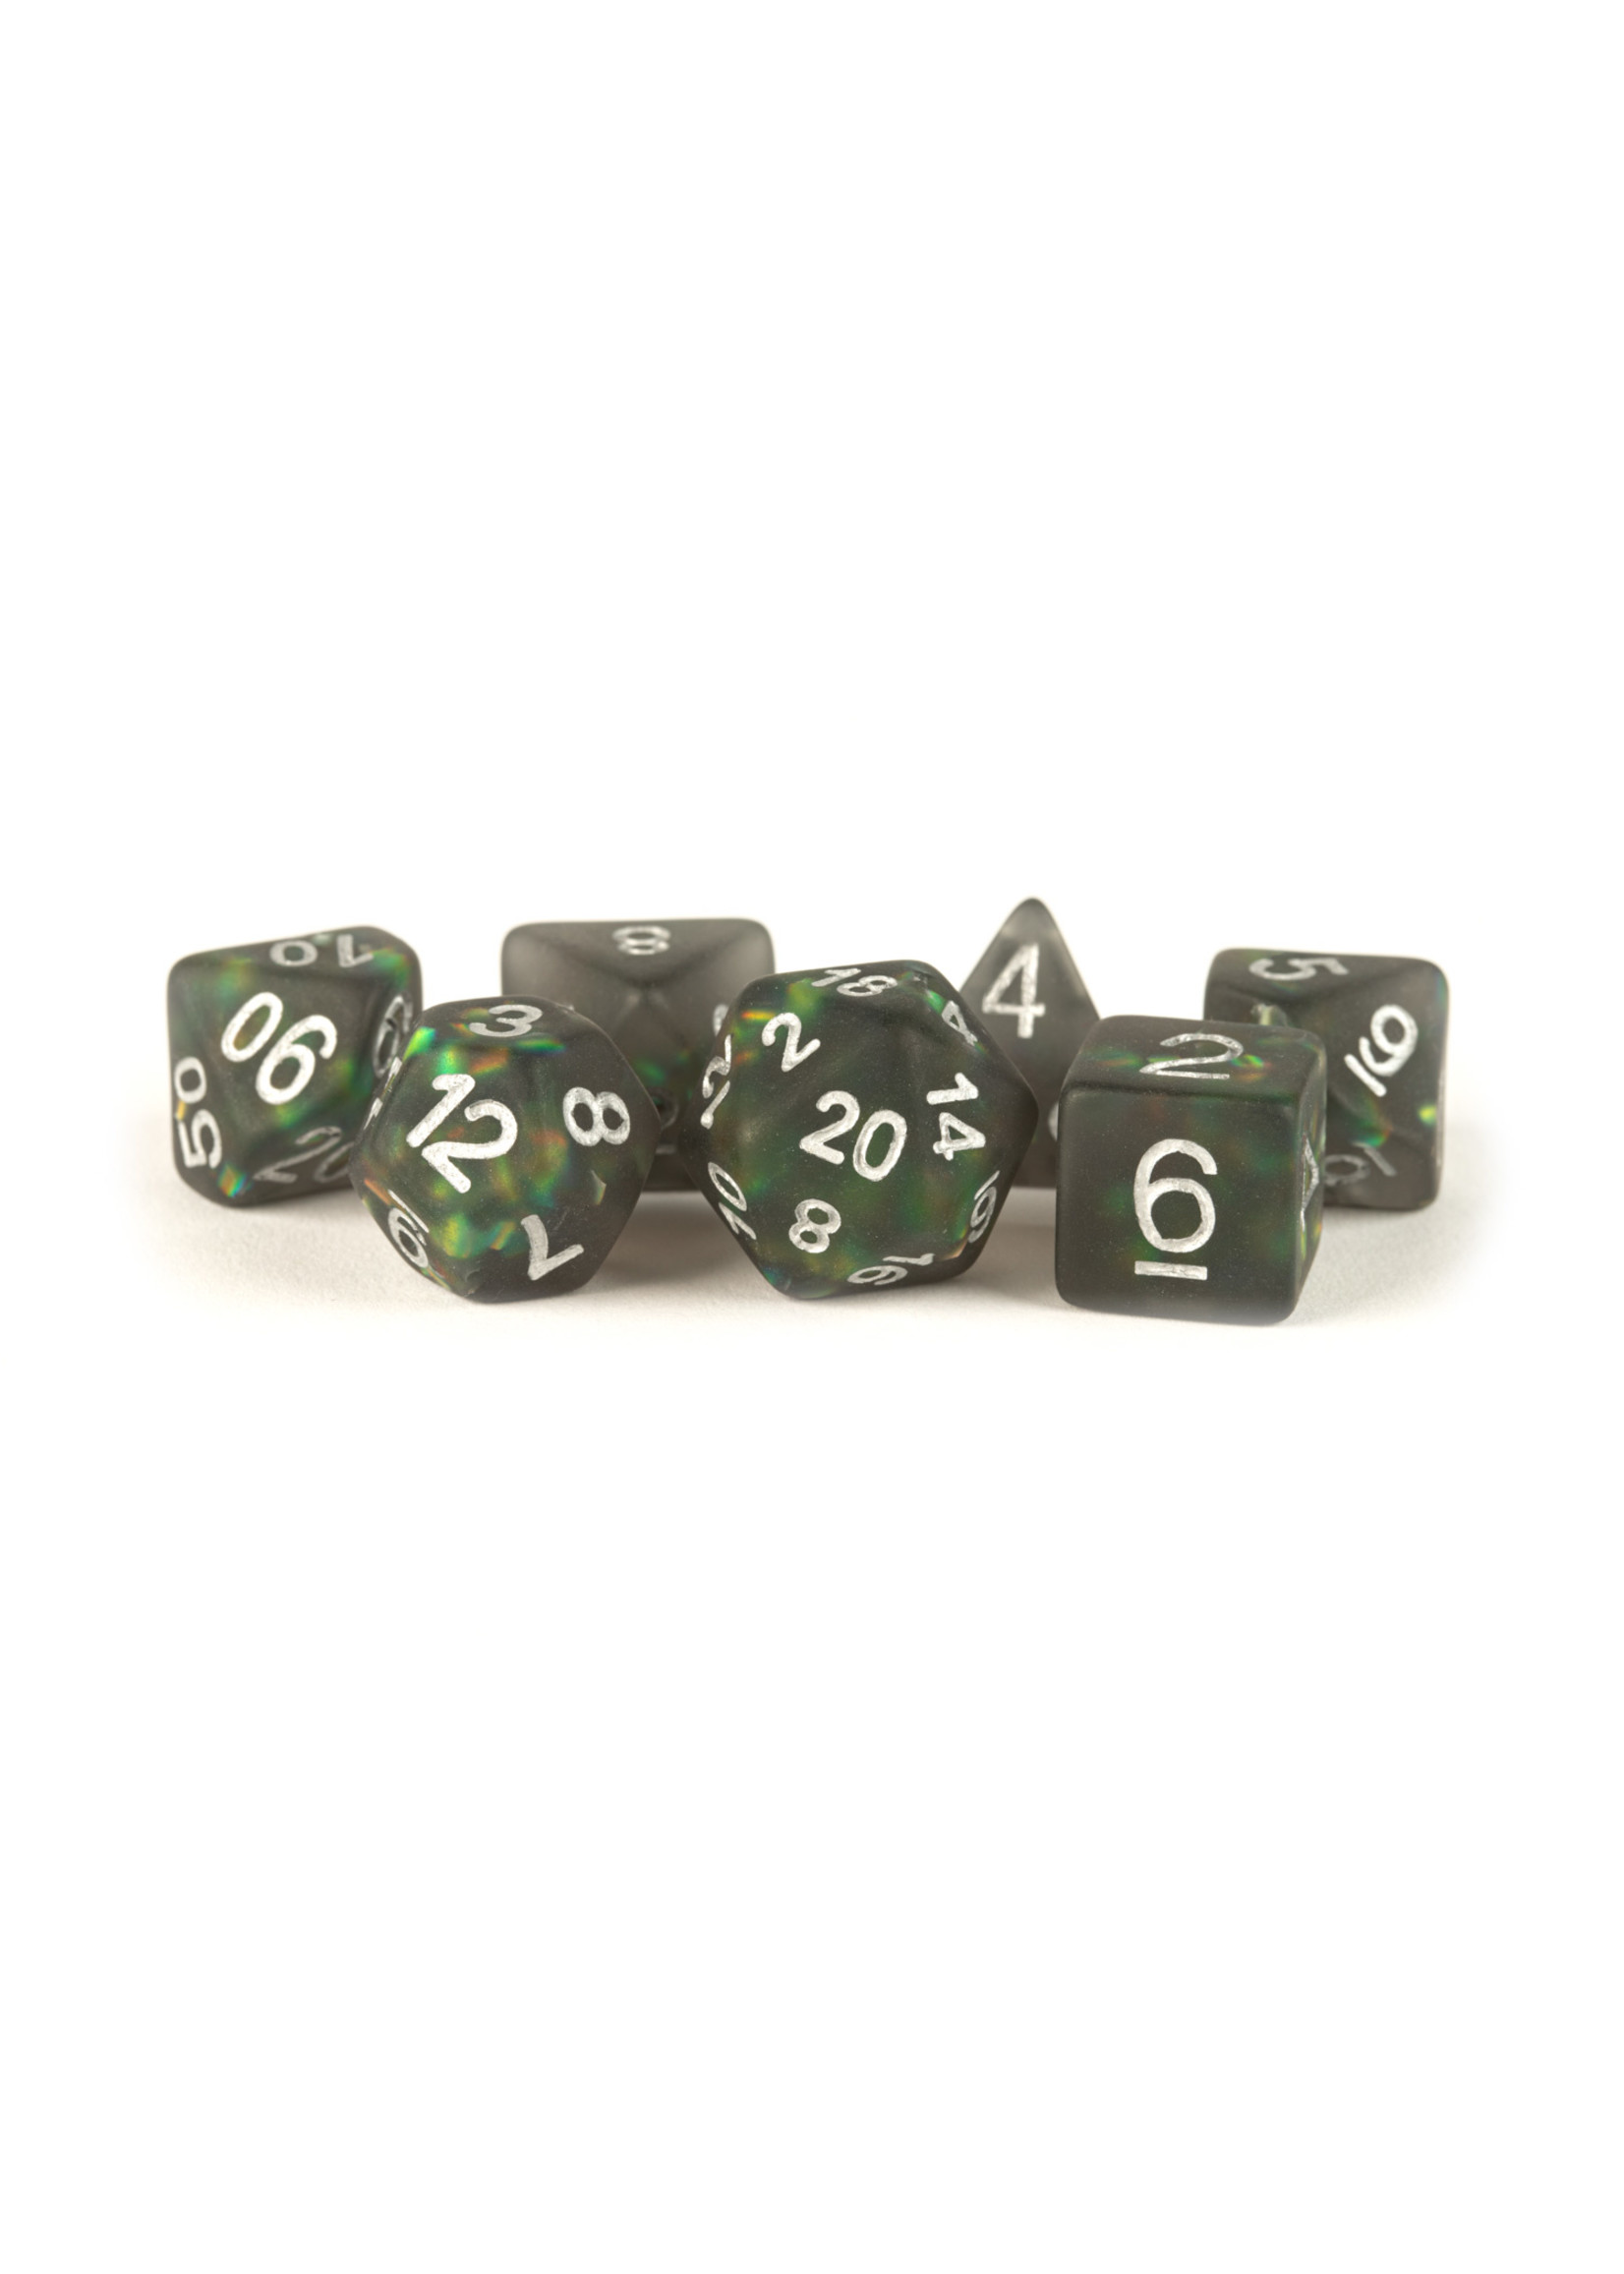 Icy Opal Resin: 16mm Dice Poly Set Black /Silver Numbers (7)